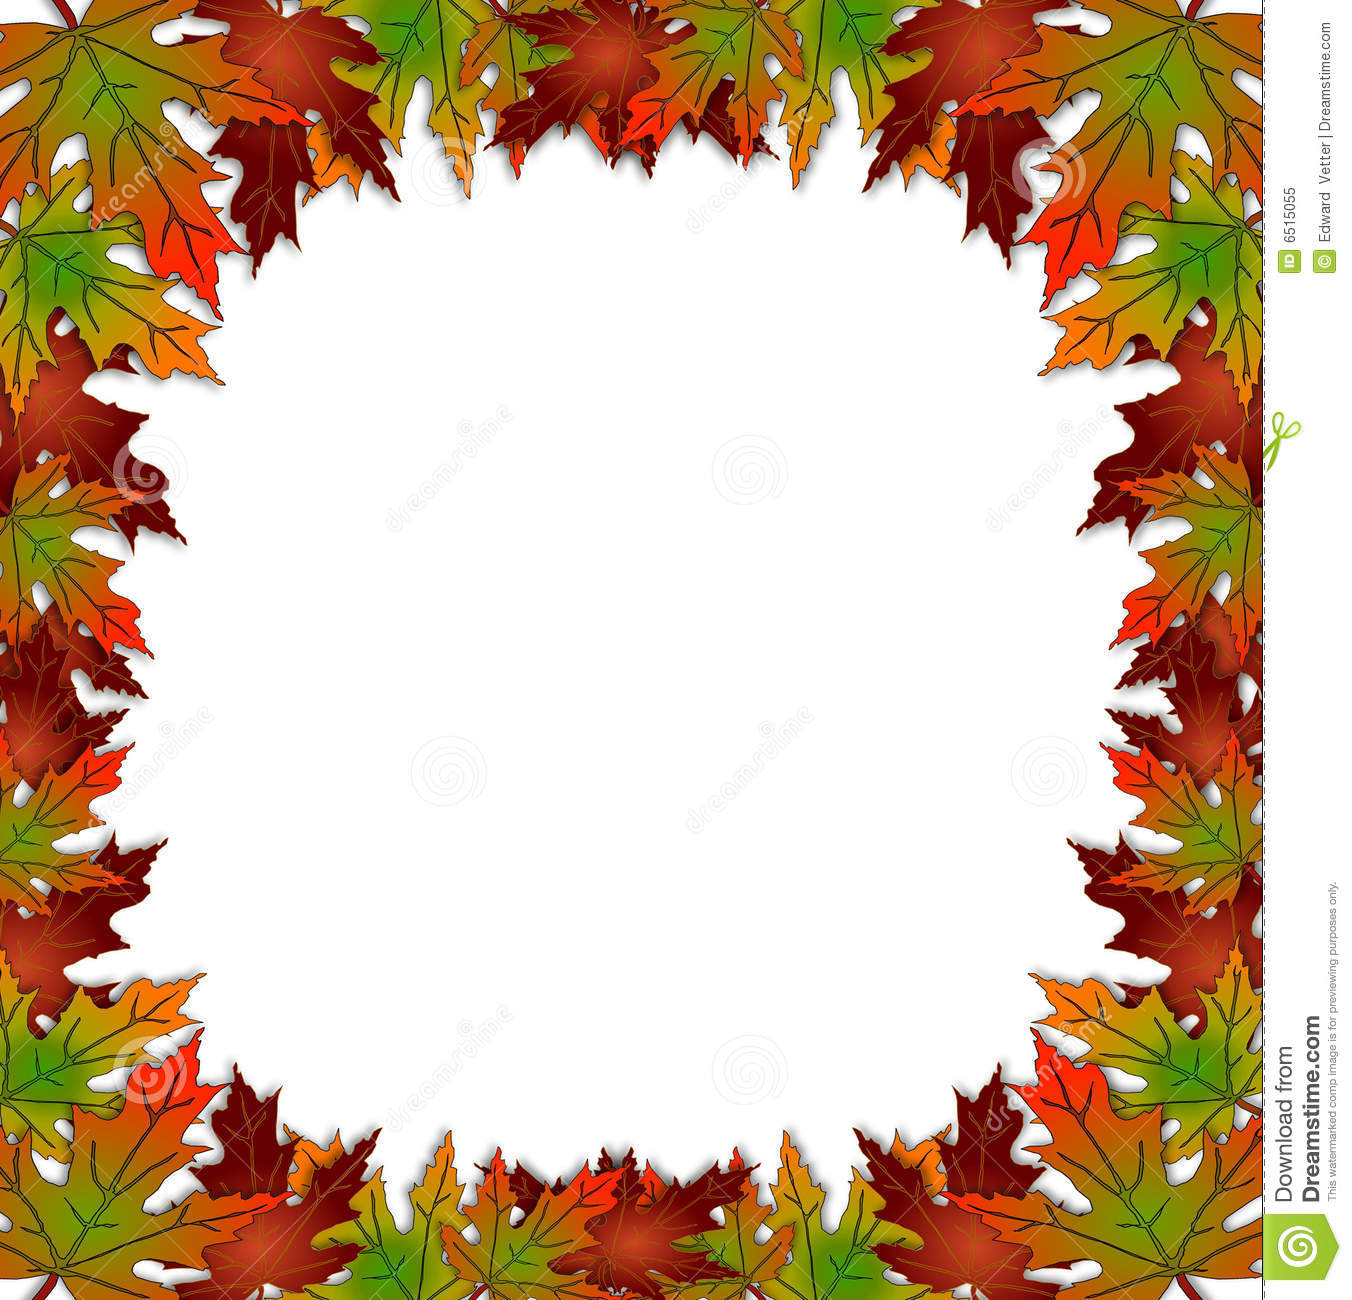 Autumn Borders Clipart - Clipart Kid